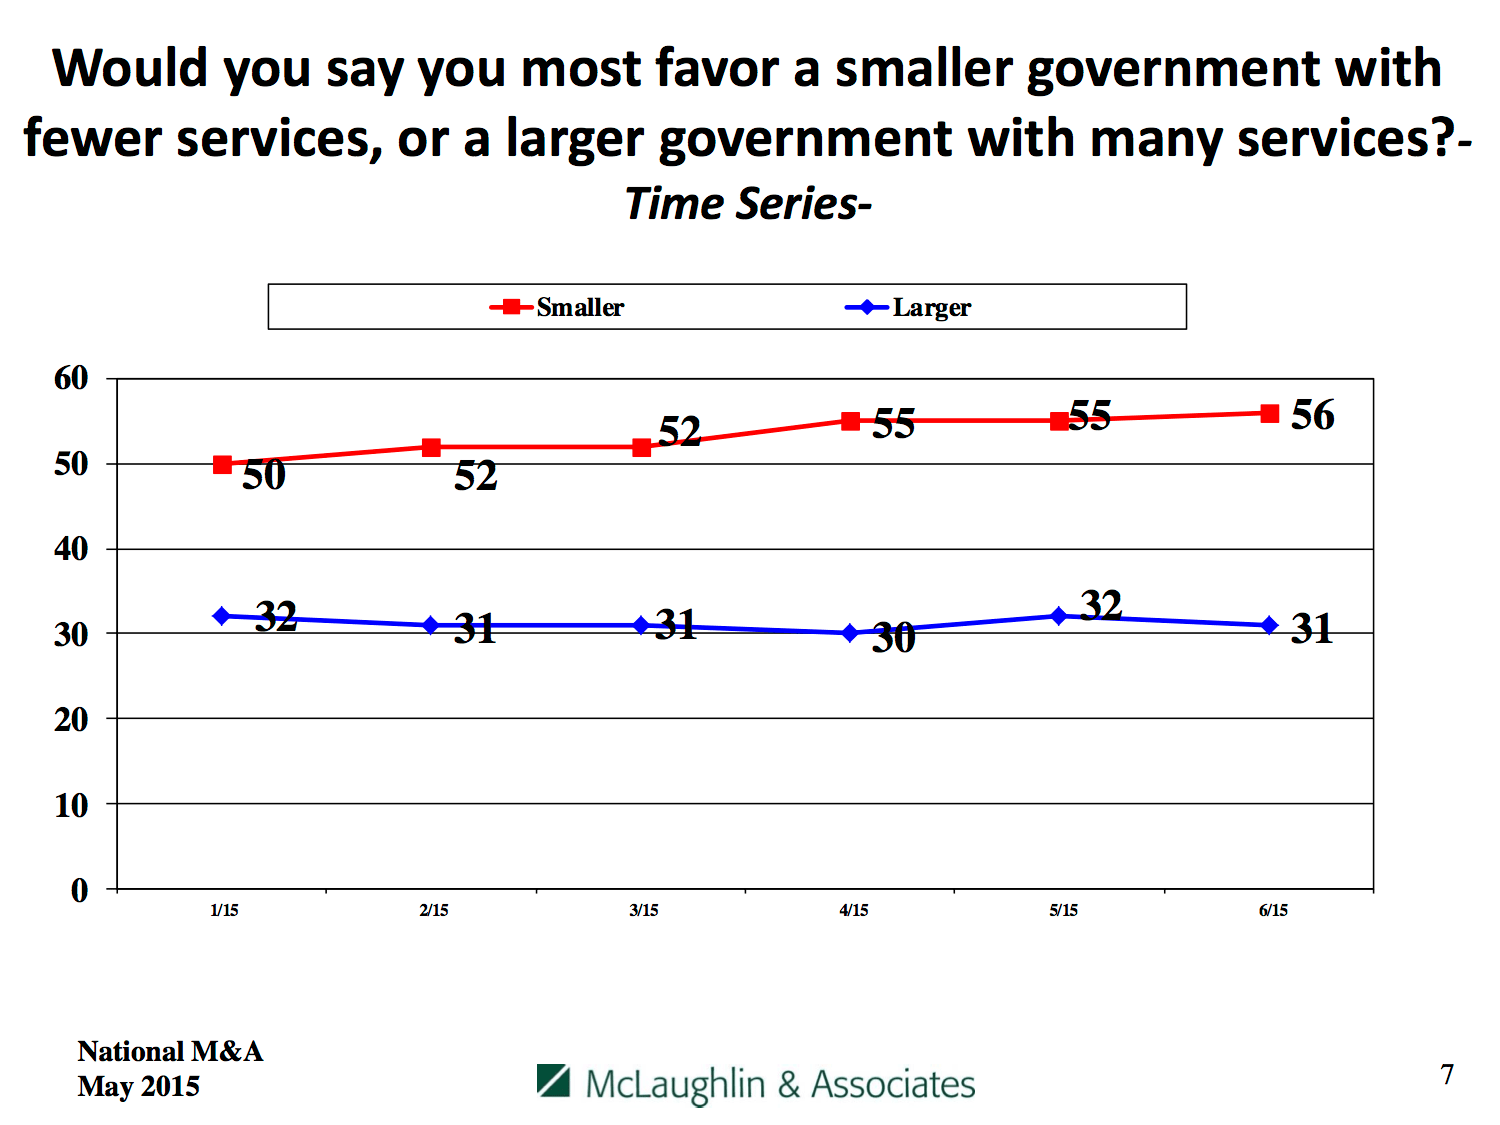 Percentage favoring smaller government vs. larger government